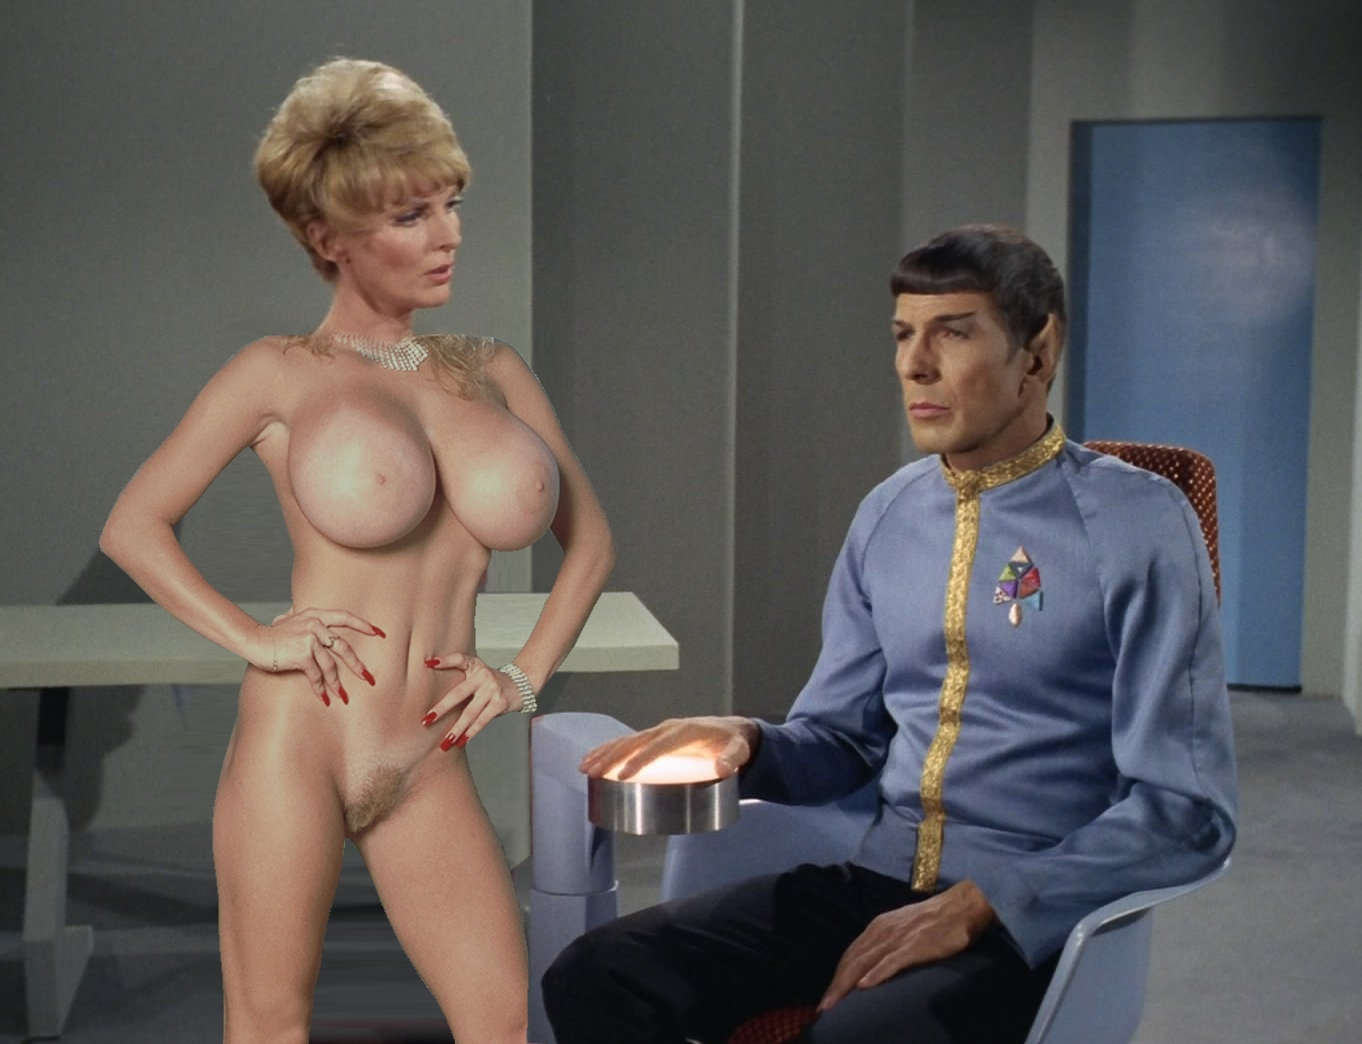 Are Star trek women porn possible tell